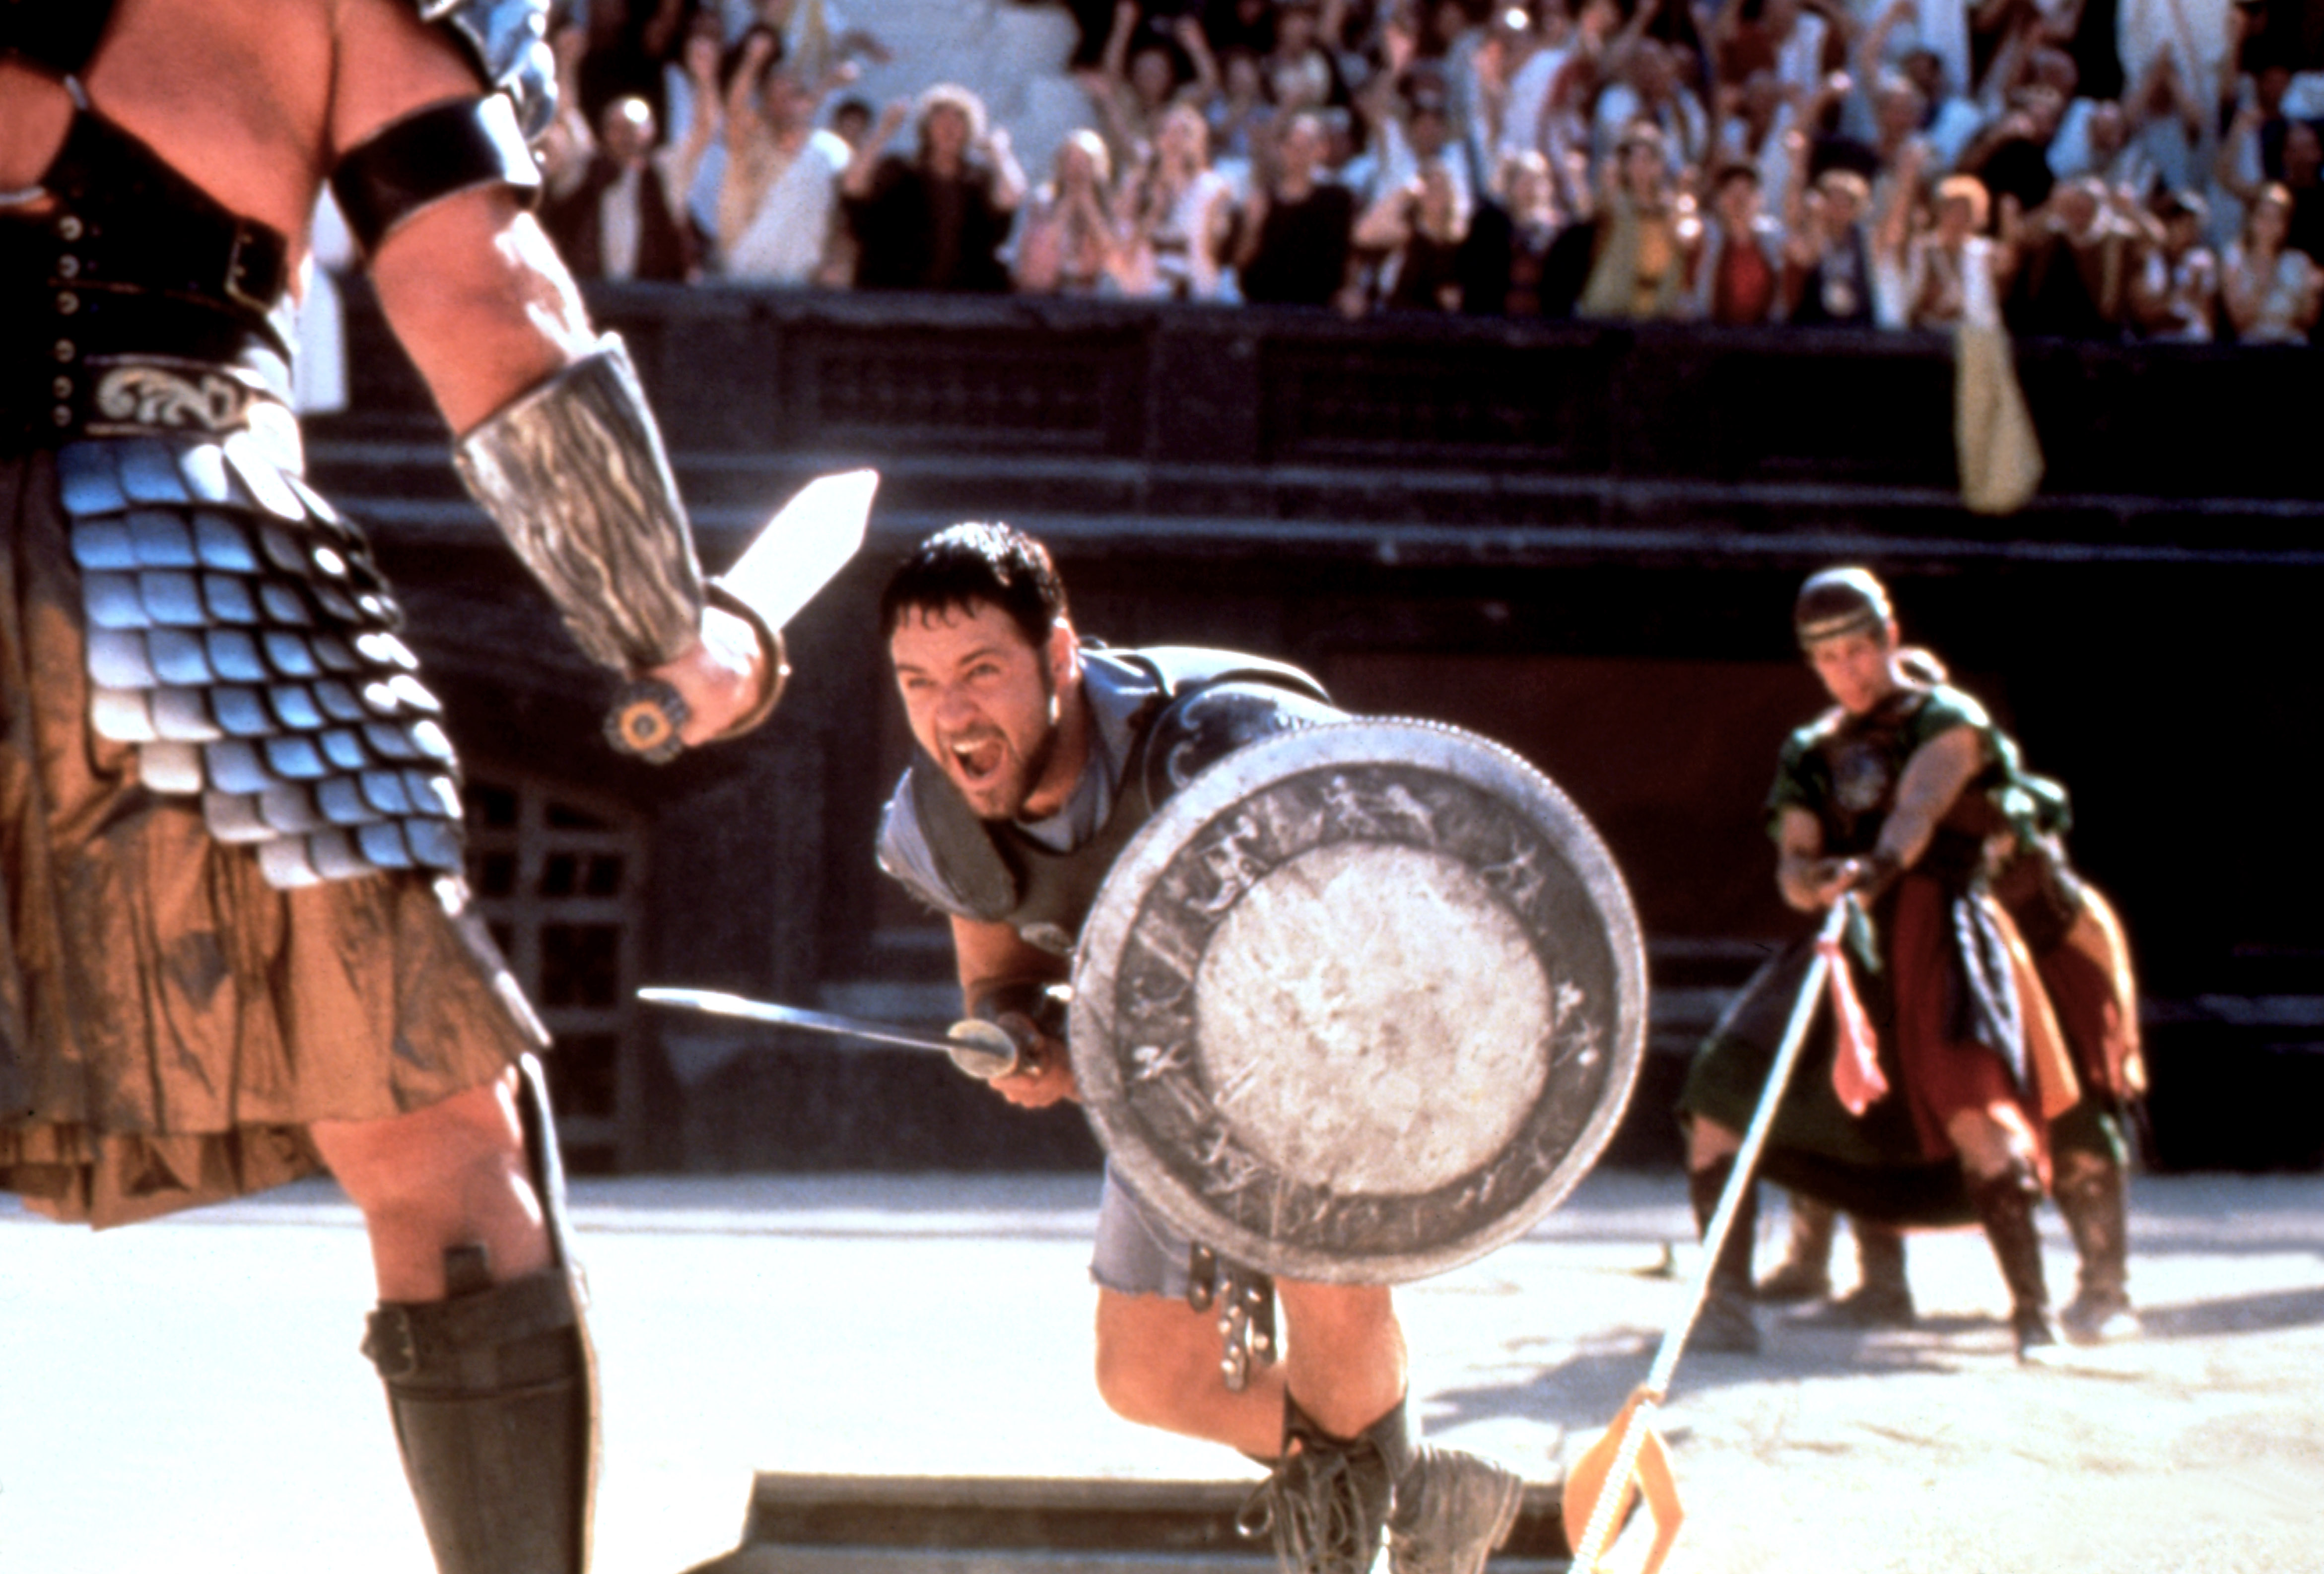 'Gladiator 2': Ridley Scott's Sequel Takes Place Over Two Decades After Original